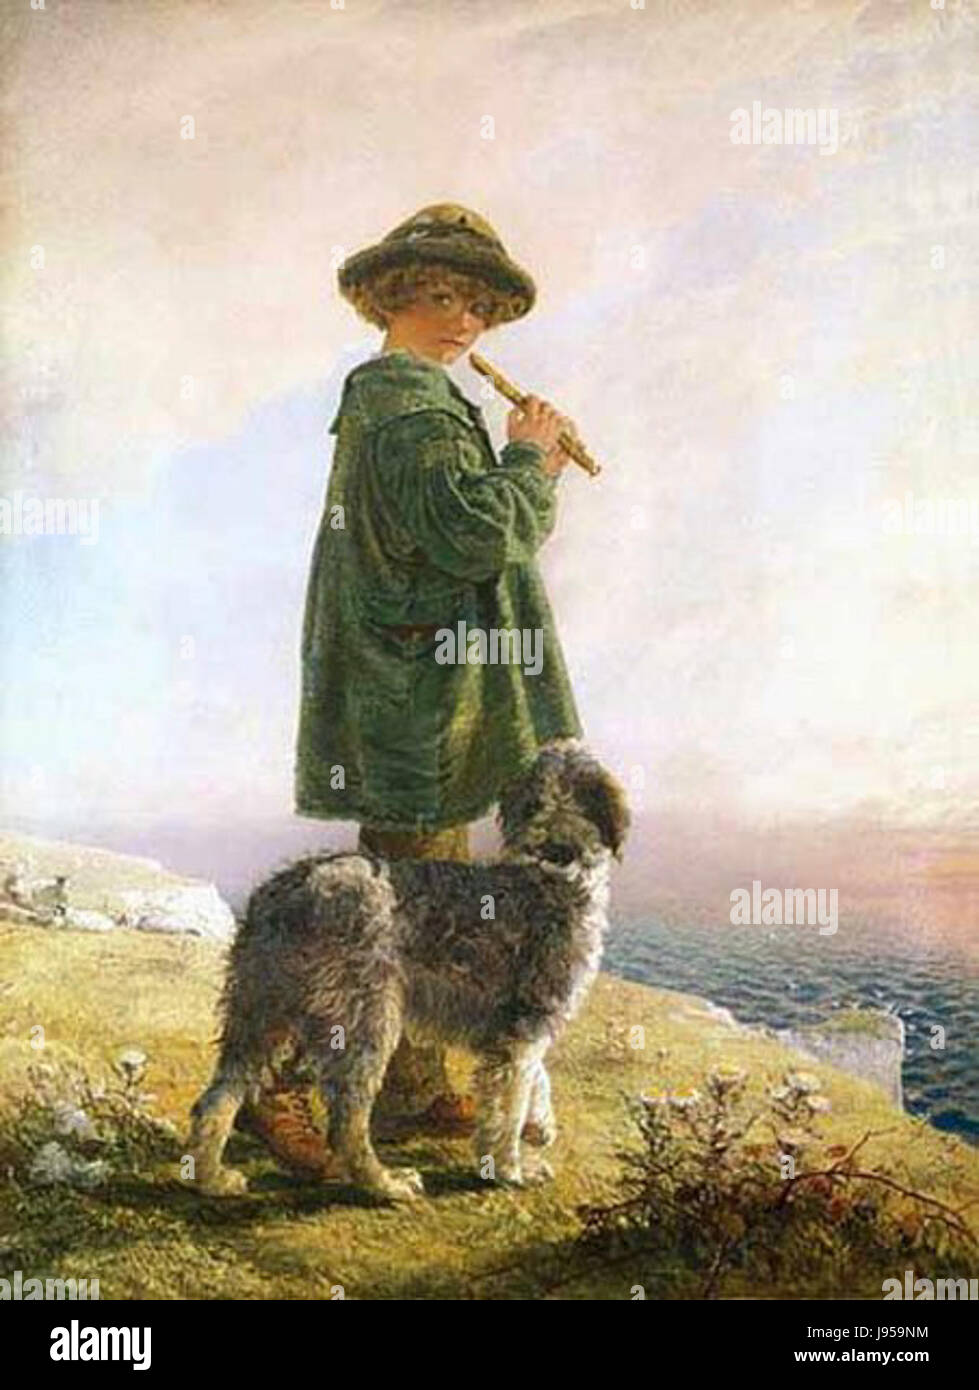 The Piping Shepherd by Alfred Downing Fripp - Stock Image